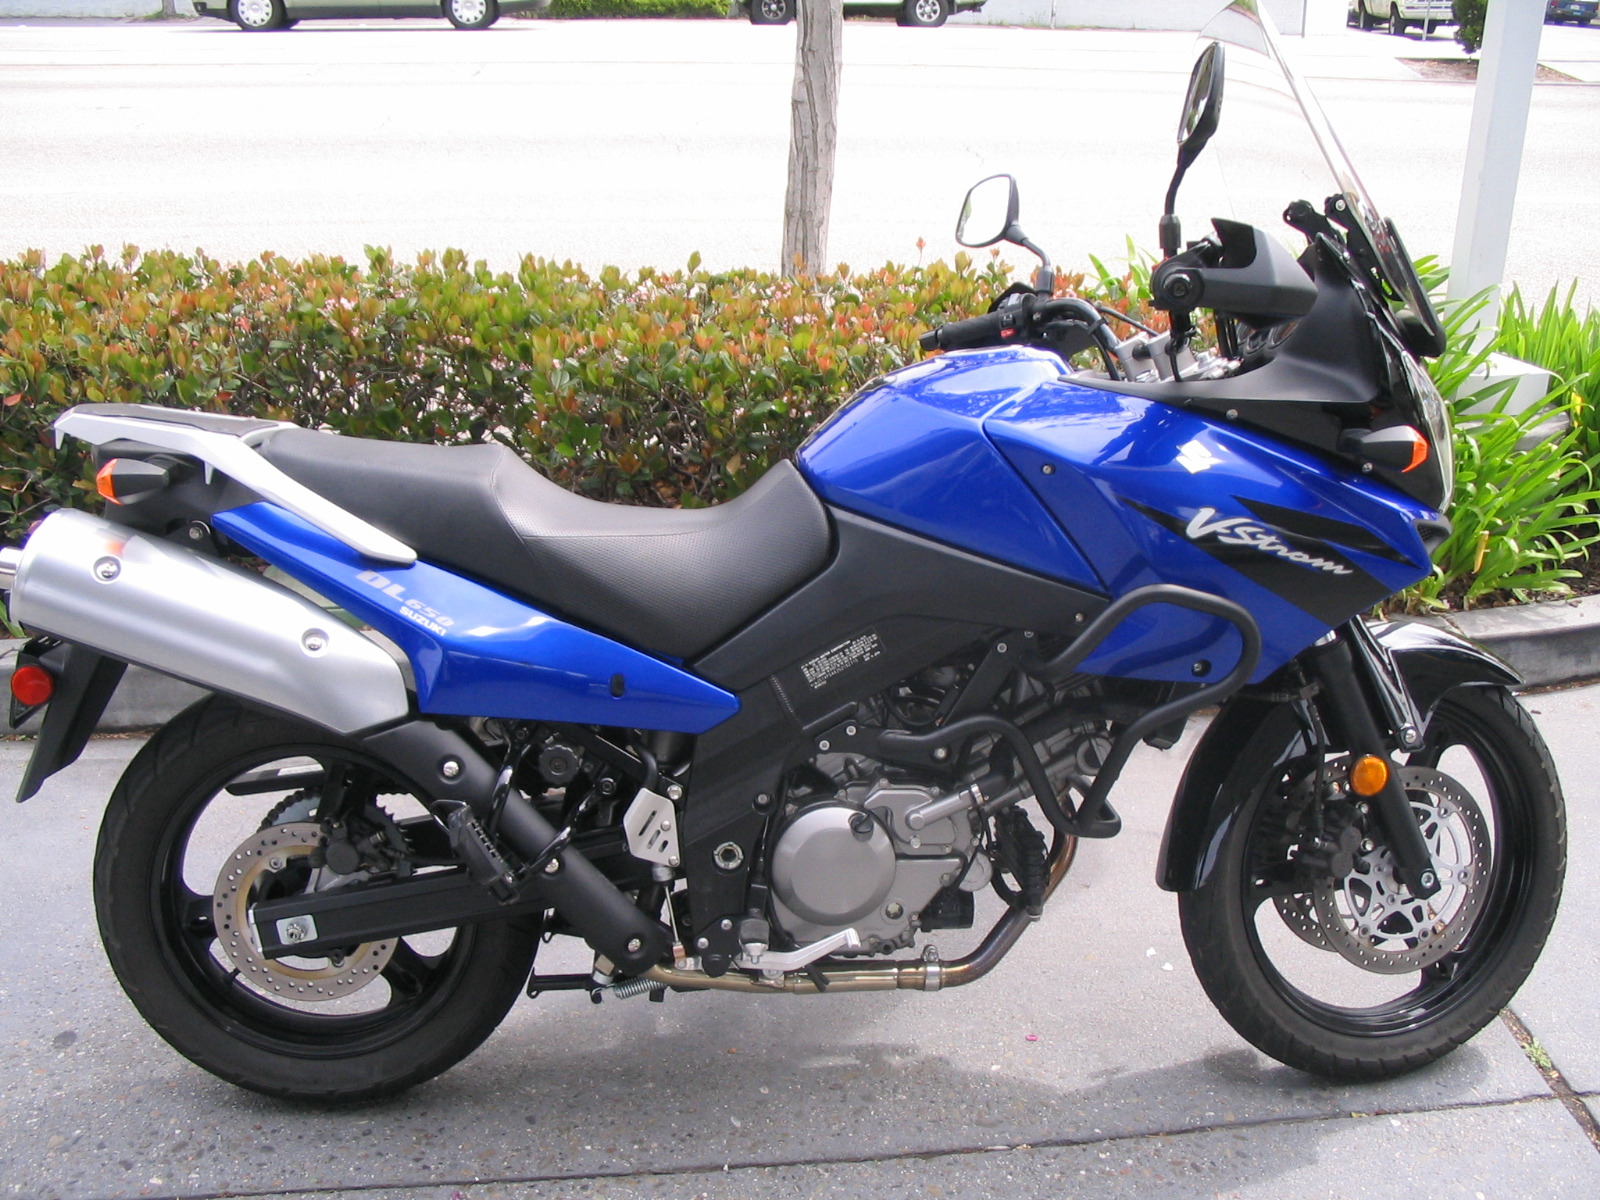 Cheap Suzuki Motorcycles For Sale